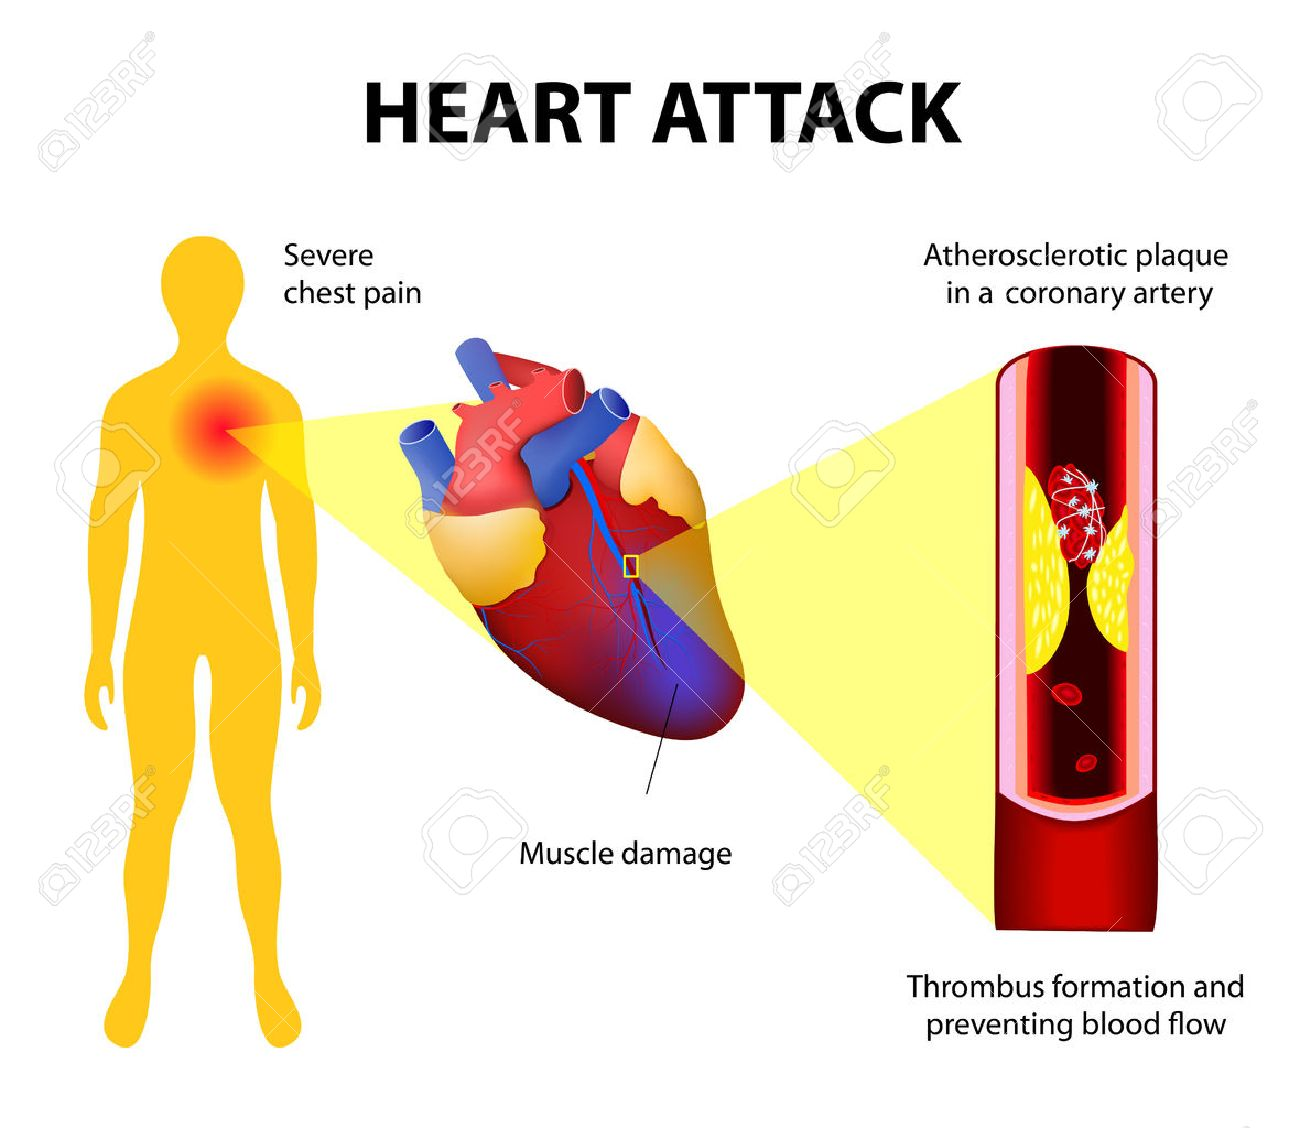 Anatomy of a heart attack diagram of a myocardial infarction anatomy of a heart attack diagram of a myocardial infarction atherosclerotic plaque in a ccuart Images